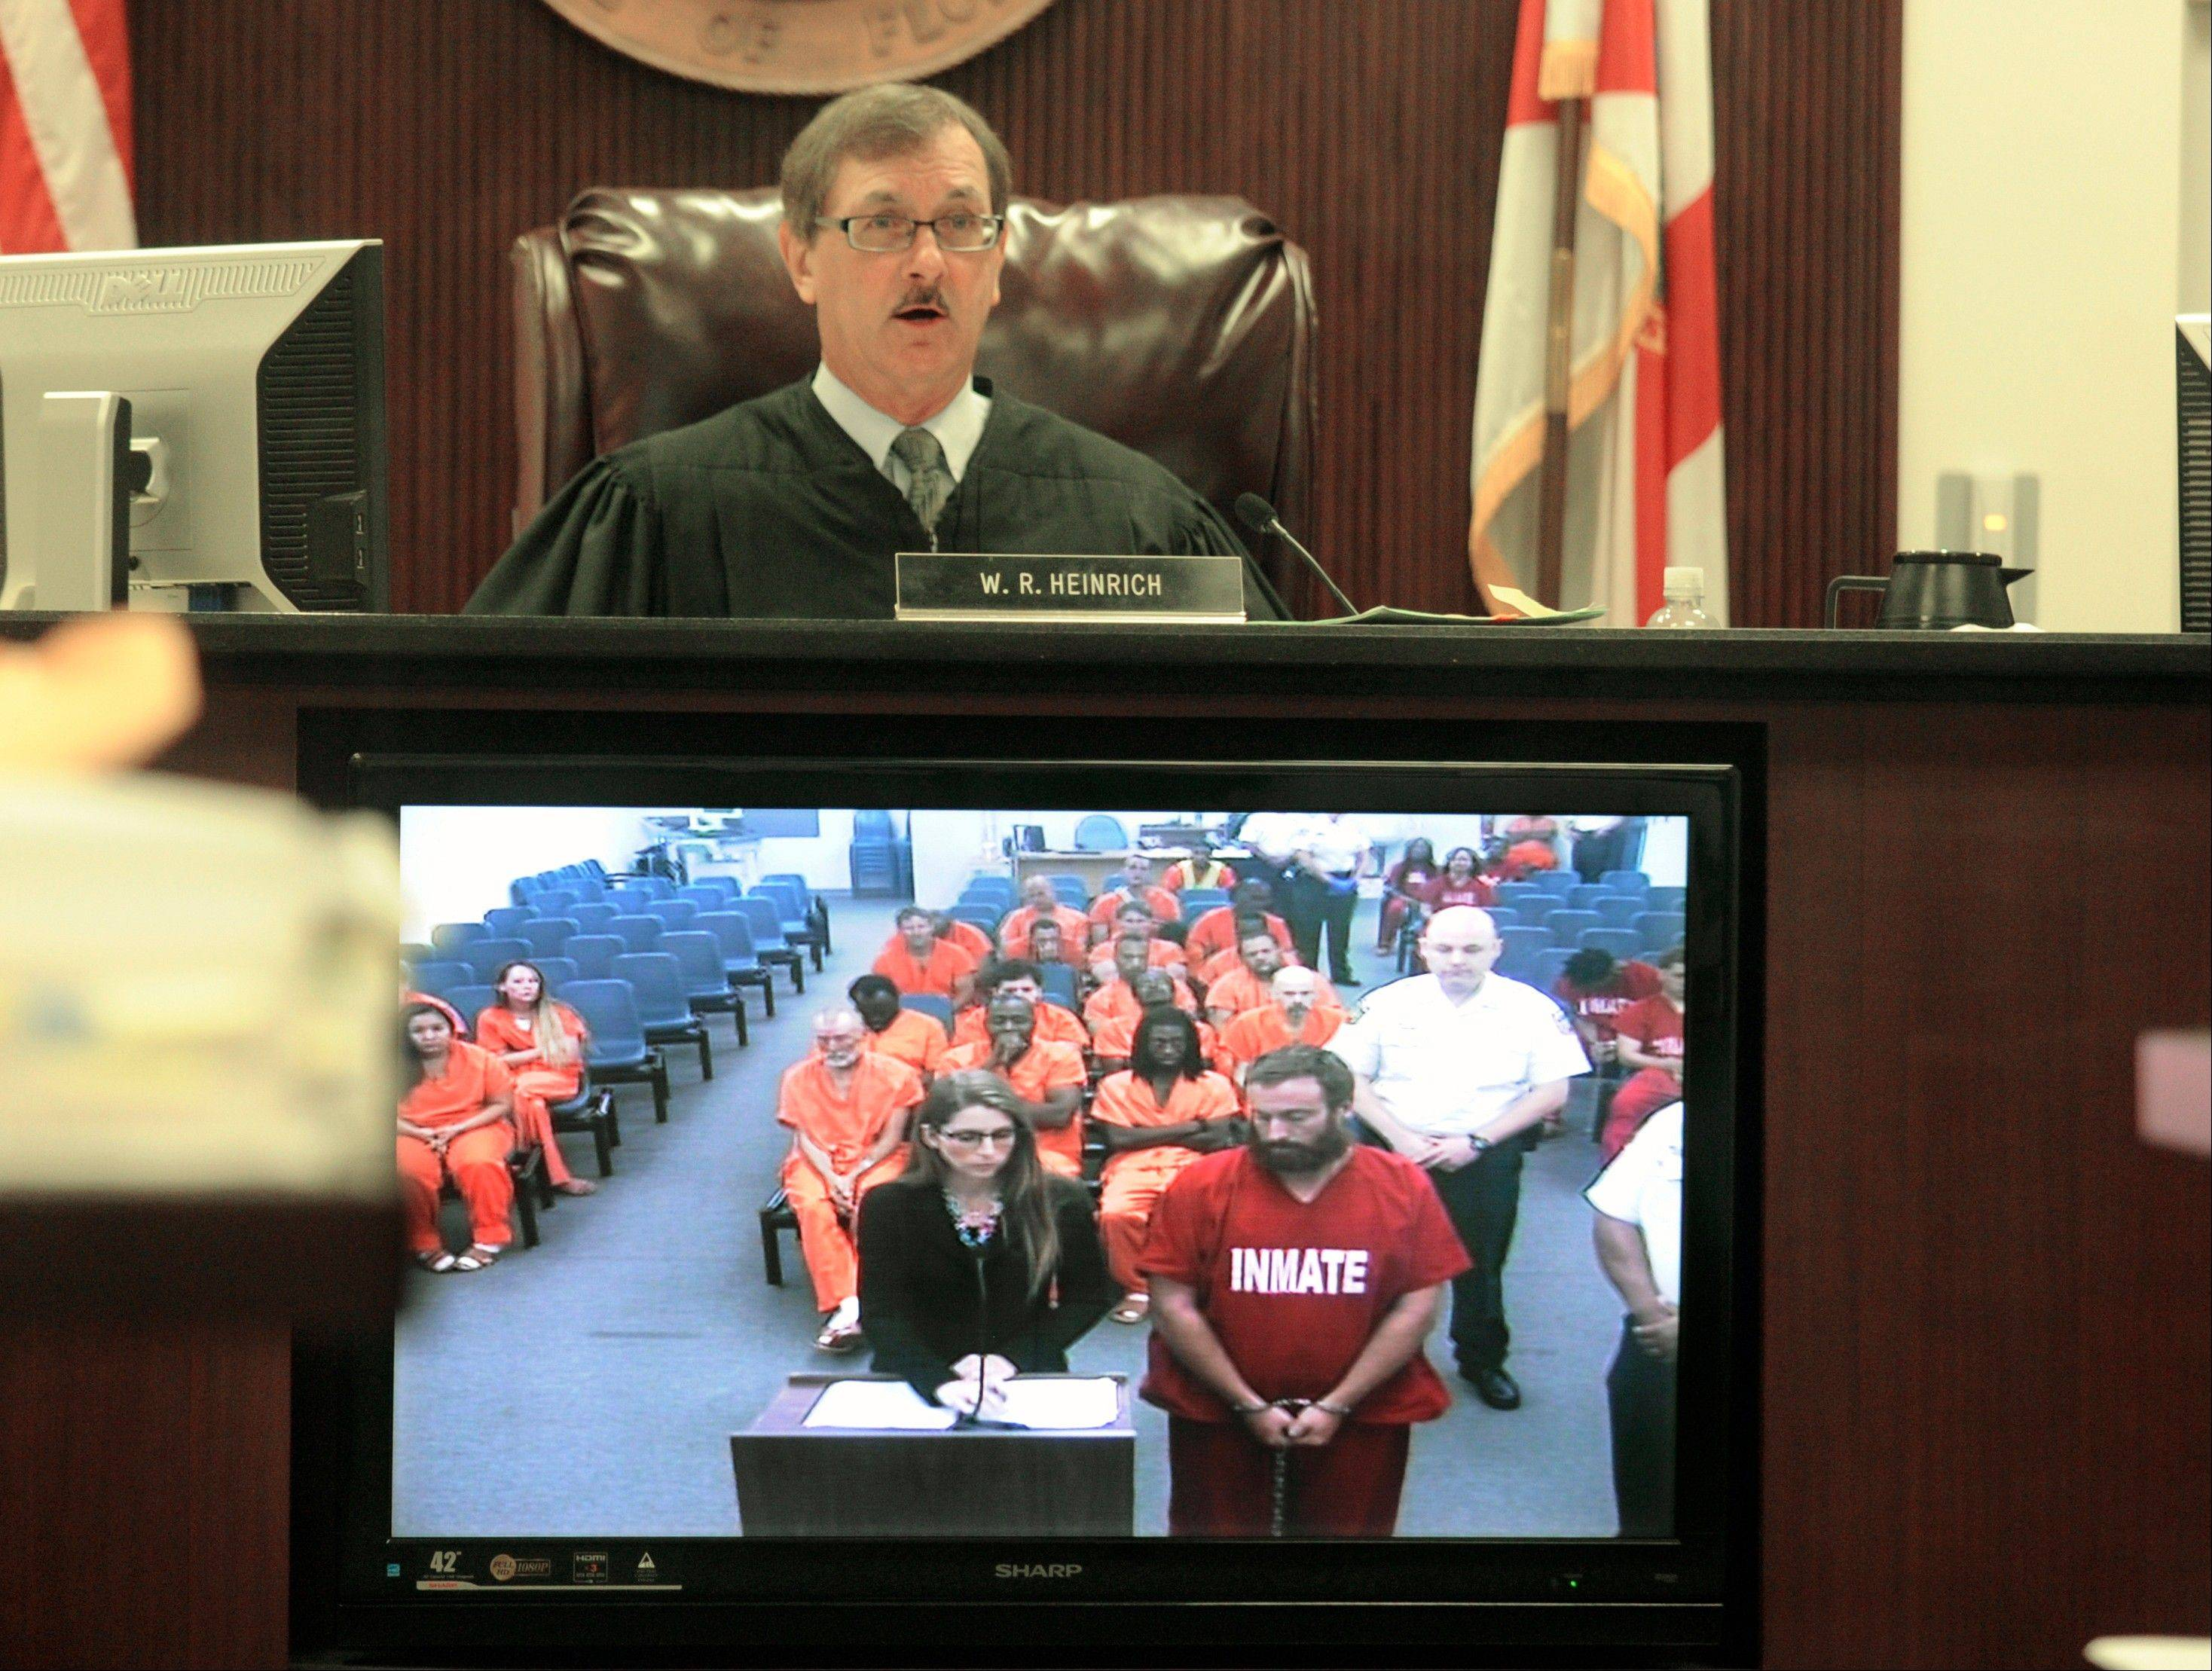 Joshua Hakken appears, via video feed from jail, in front of Judge Walter Heinrich, Thursday April 11, 2013, in Tampa, Florida. He and his wife Sharyn Hakken face charges related the kidnapping of their two children from their grandmother and fleeing to Cuba after losing custody. They were ordered Thursday to remain in jail without bond and to have no contact with their two young sons.